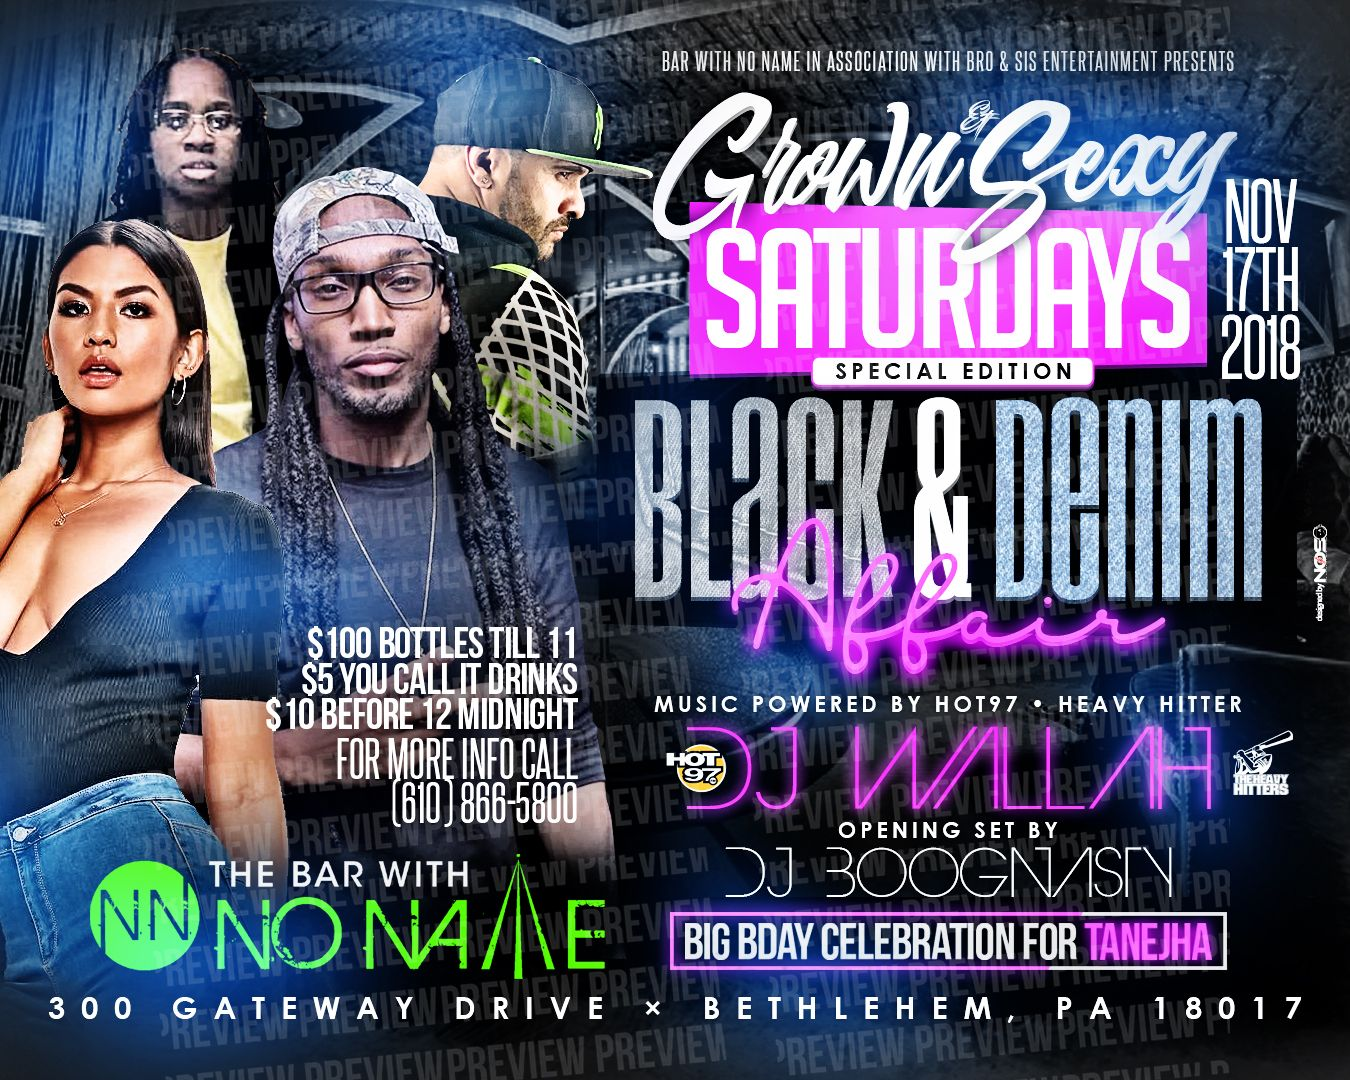 Grown and Sexy Saturdays special event on November 17th, black and denim affair